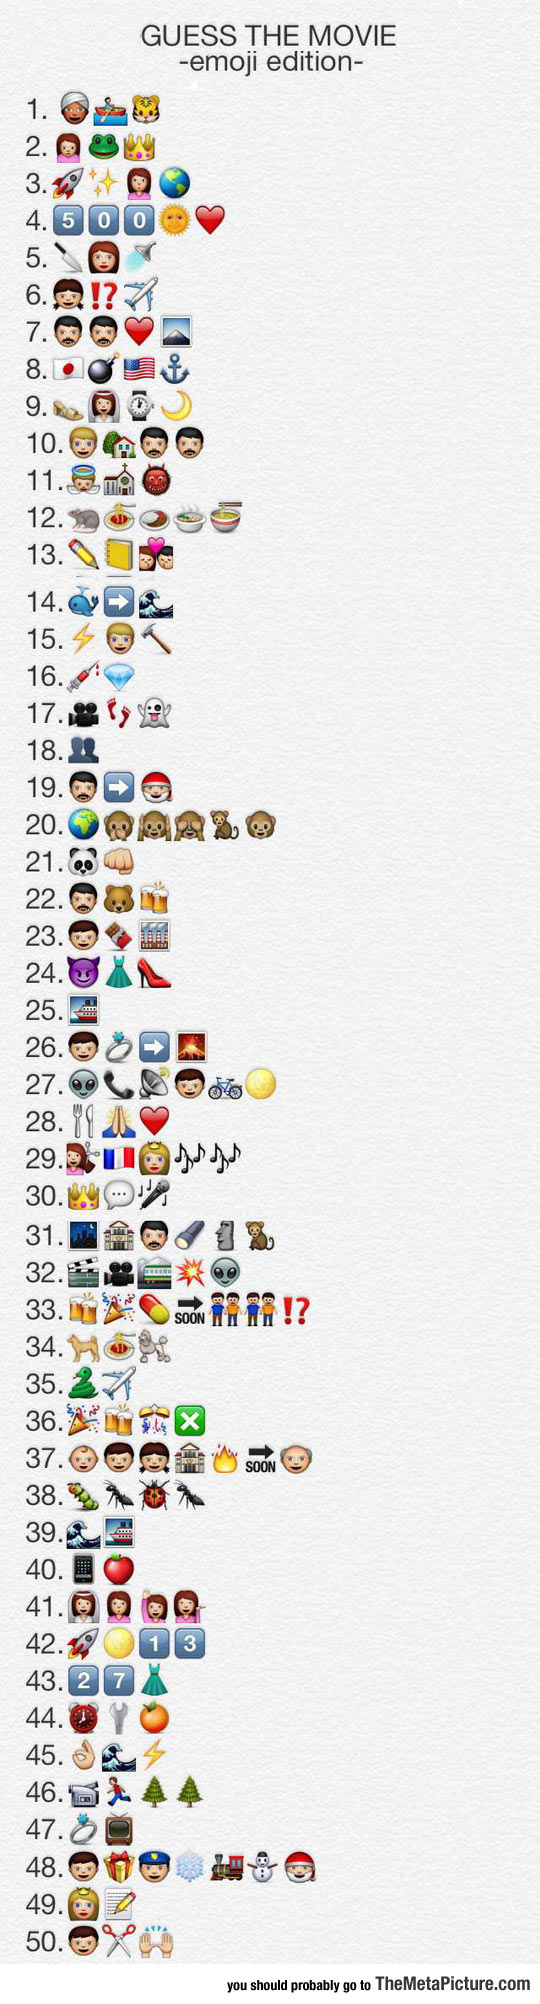 Can You Guess All The Movies?